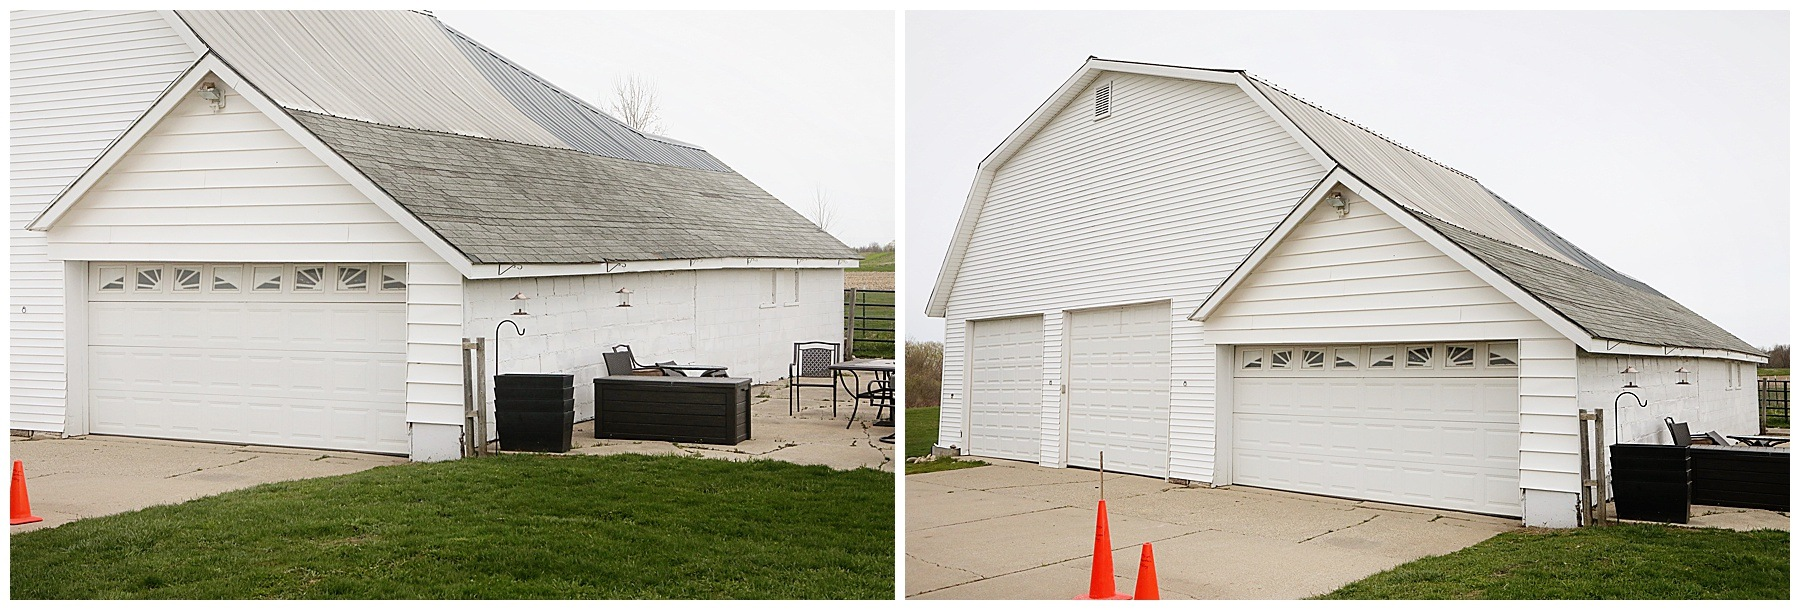 Our Barndominium Barn Renovation - Sugar Maple Farmhouse